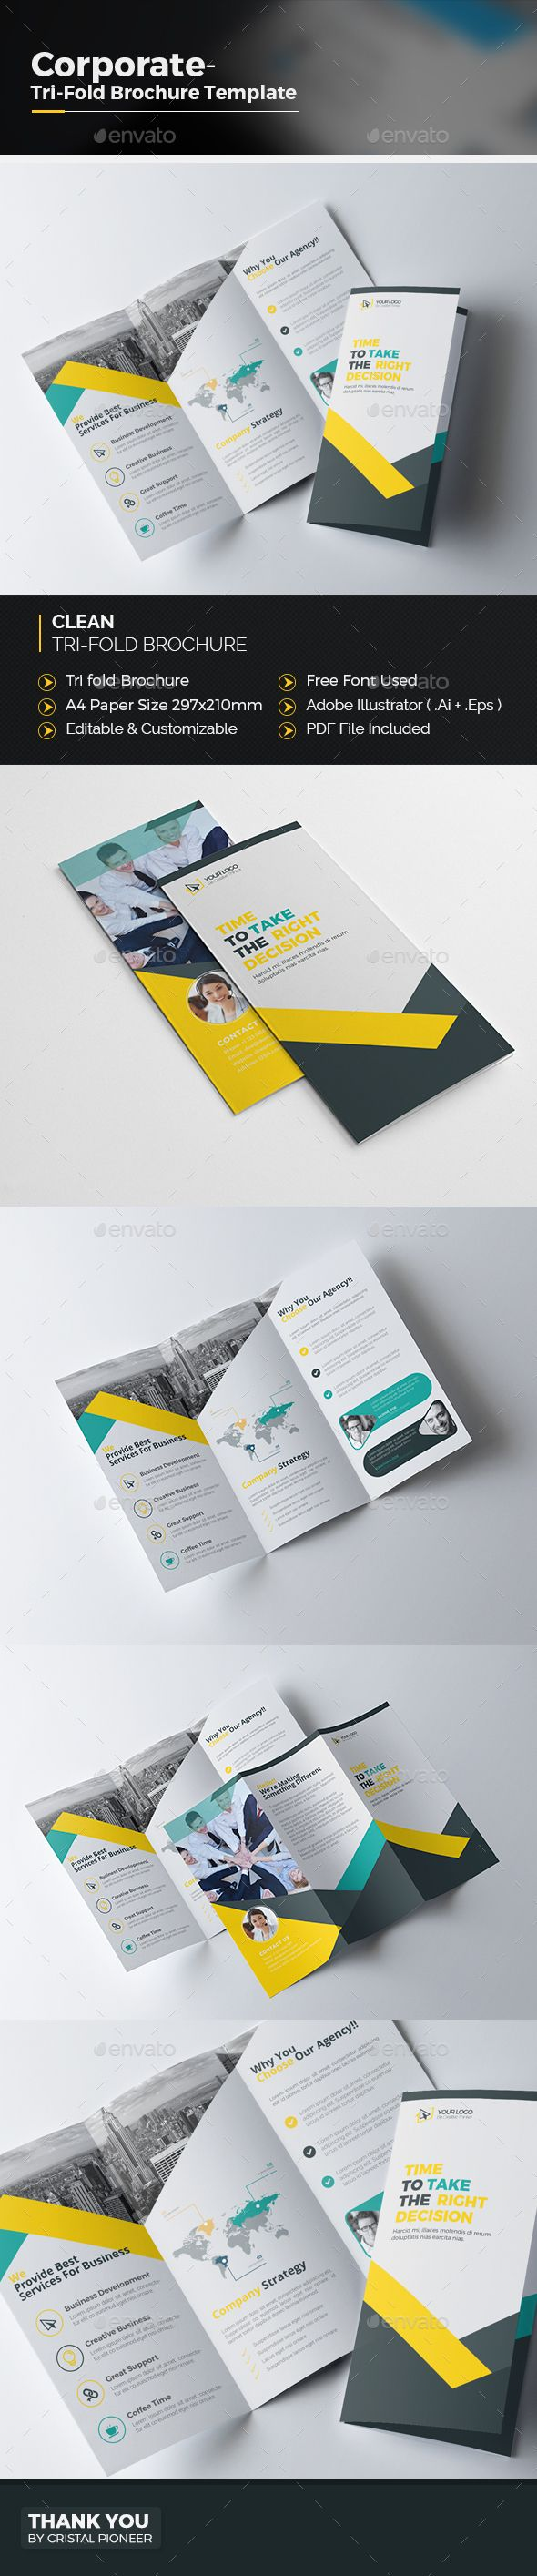 Tri fold Brochure Template Vector EPS, AI Illustrator. Download here: http://graphicriver.net/item/tri-fold-brochure-template/16651044?ref=ksioks